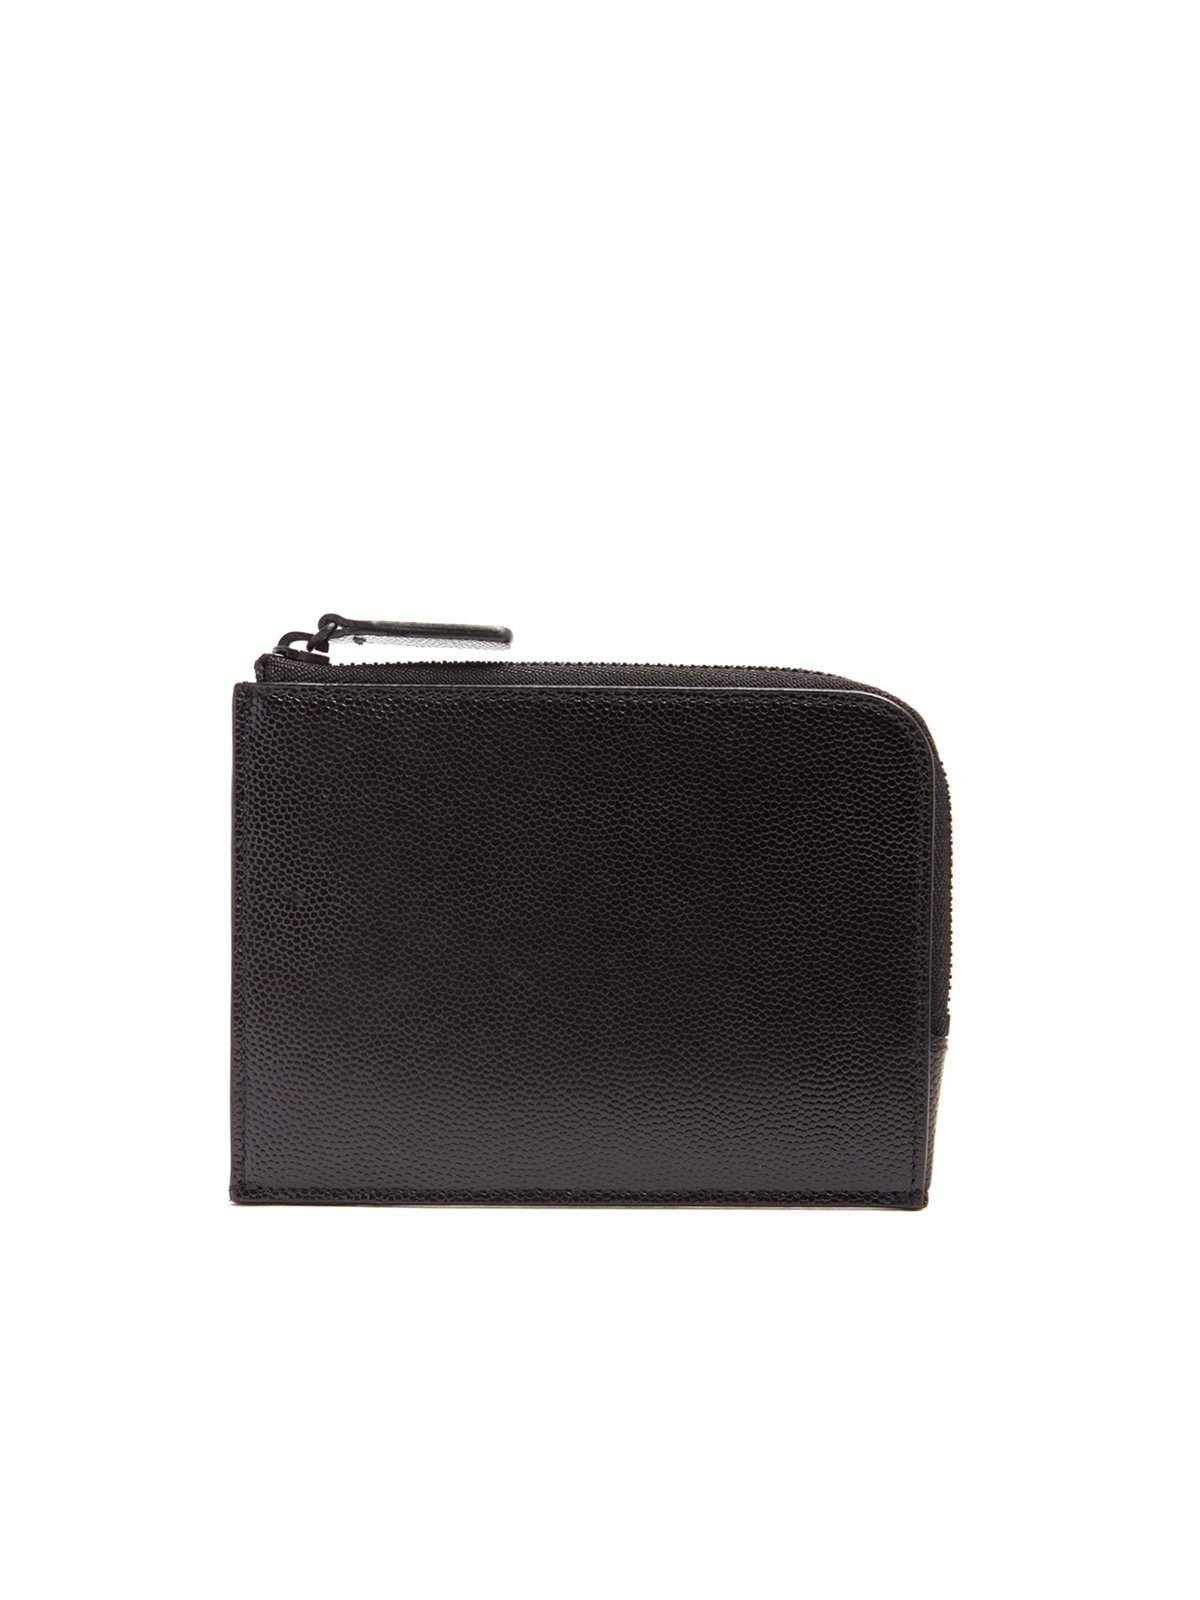 Common Projects Zip Around Pebbled Leather Wallet Black - MORE by Morello Indonesia